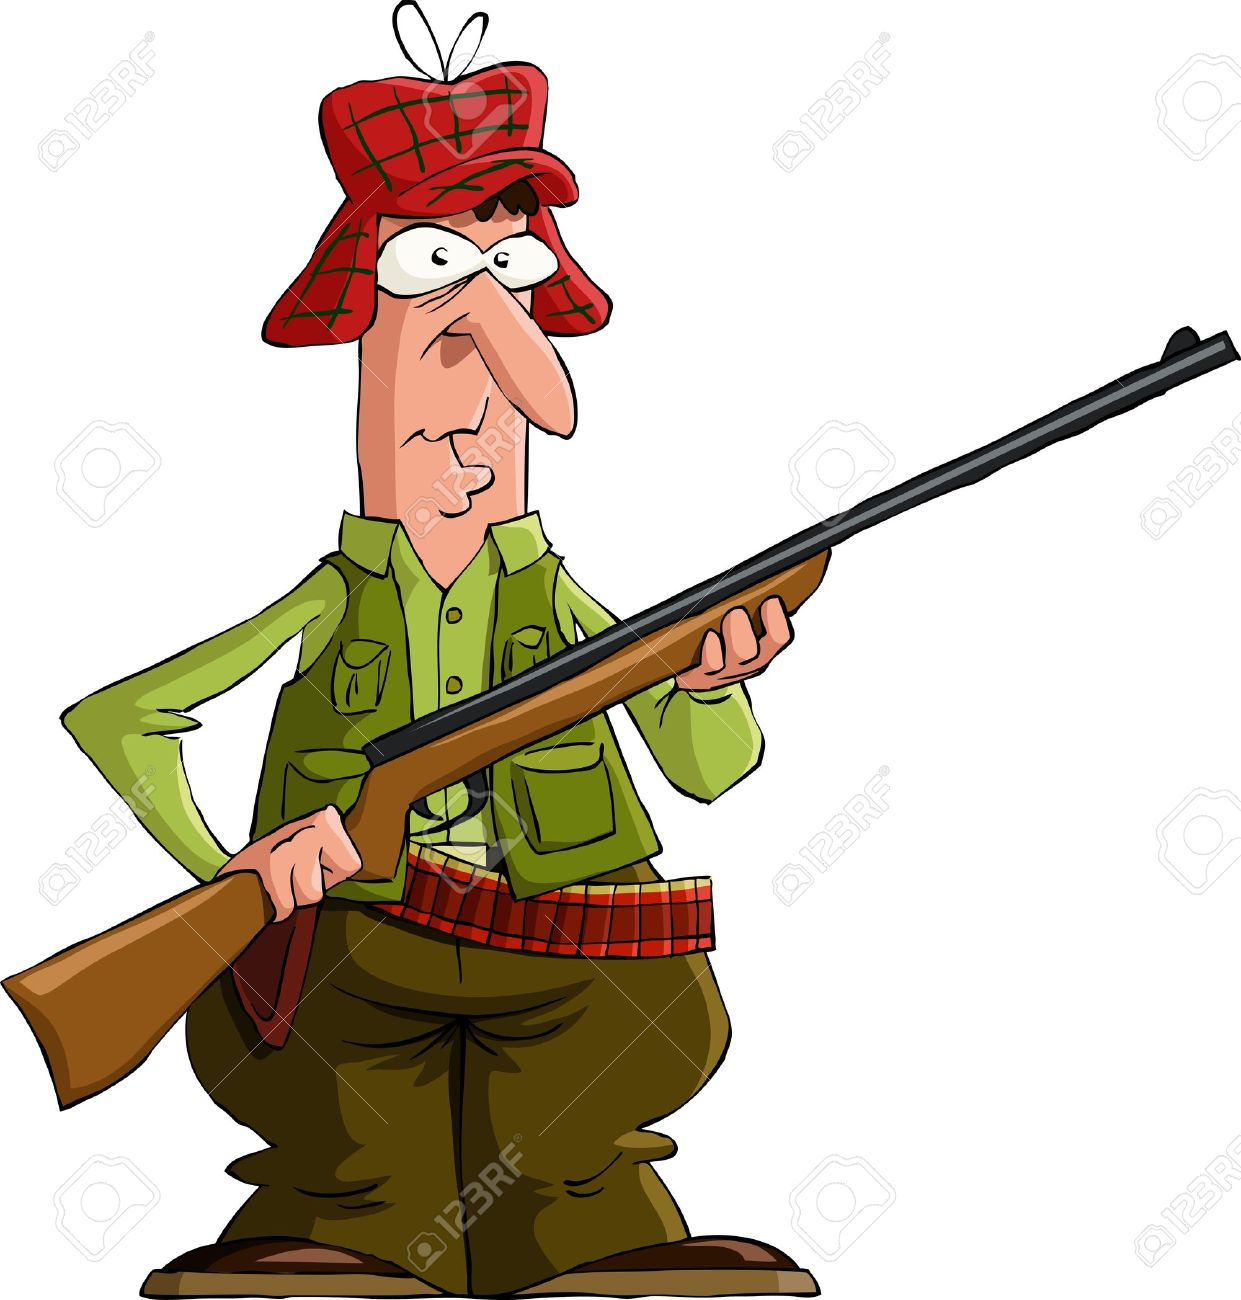 Hunting clipart man hunting. Hunter free download best